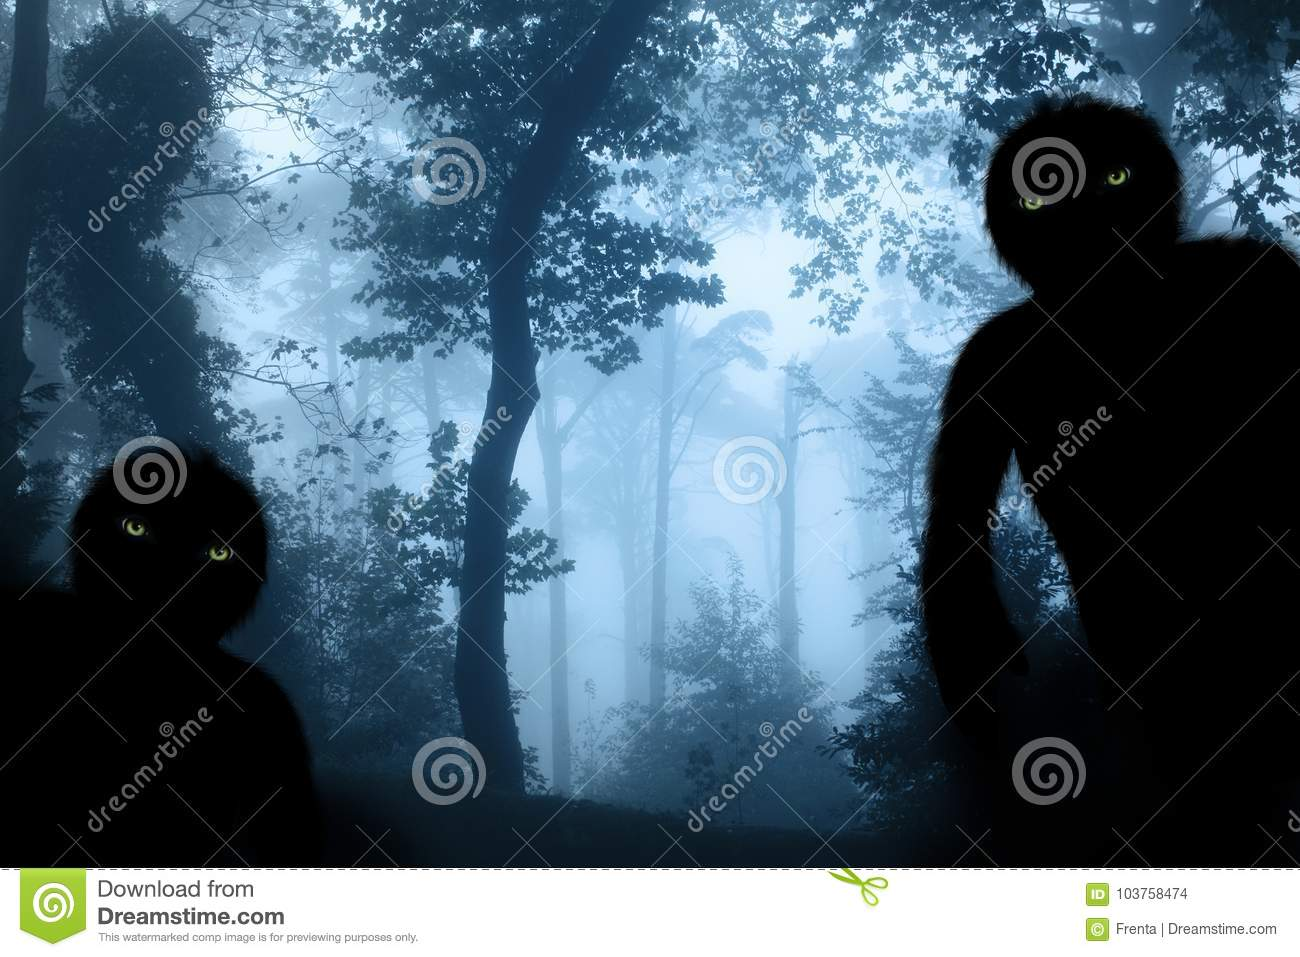 Two monsters in misty forest landscape